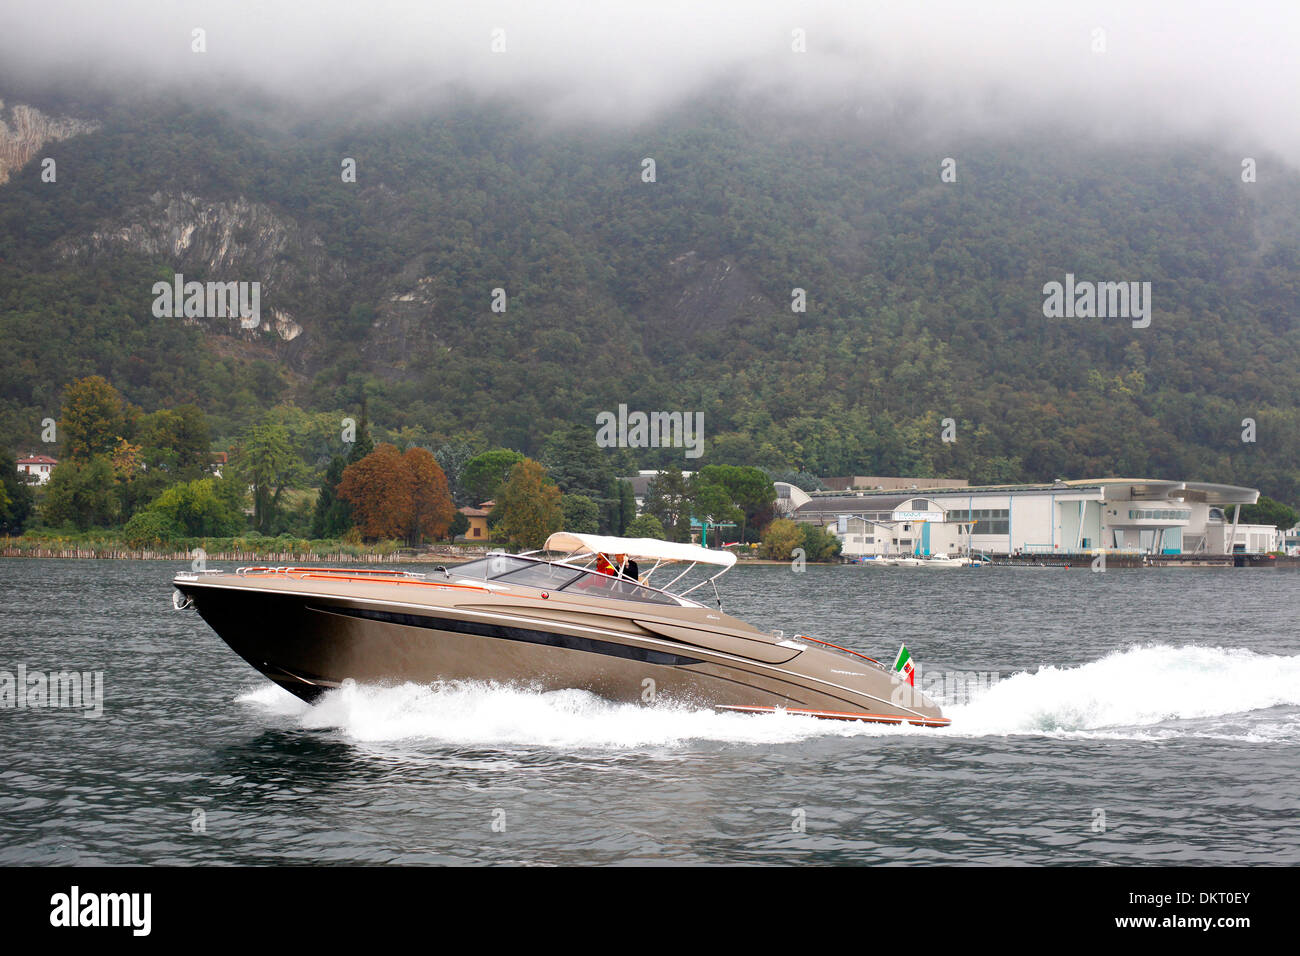 A Rivarama super yacht near the Riva factory on a misty Lake Iseo in Sarnico, Italy. - Stock Image